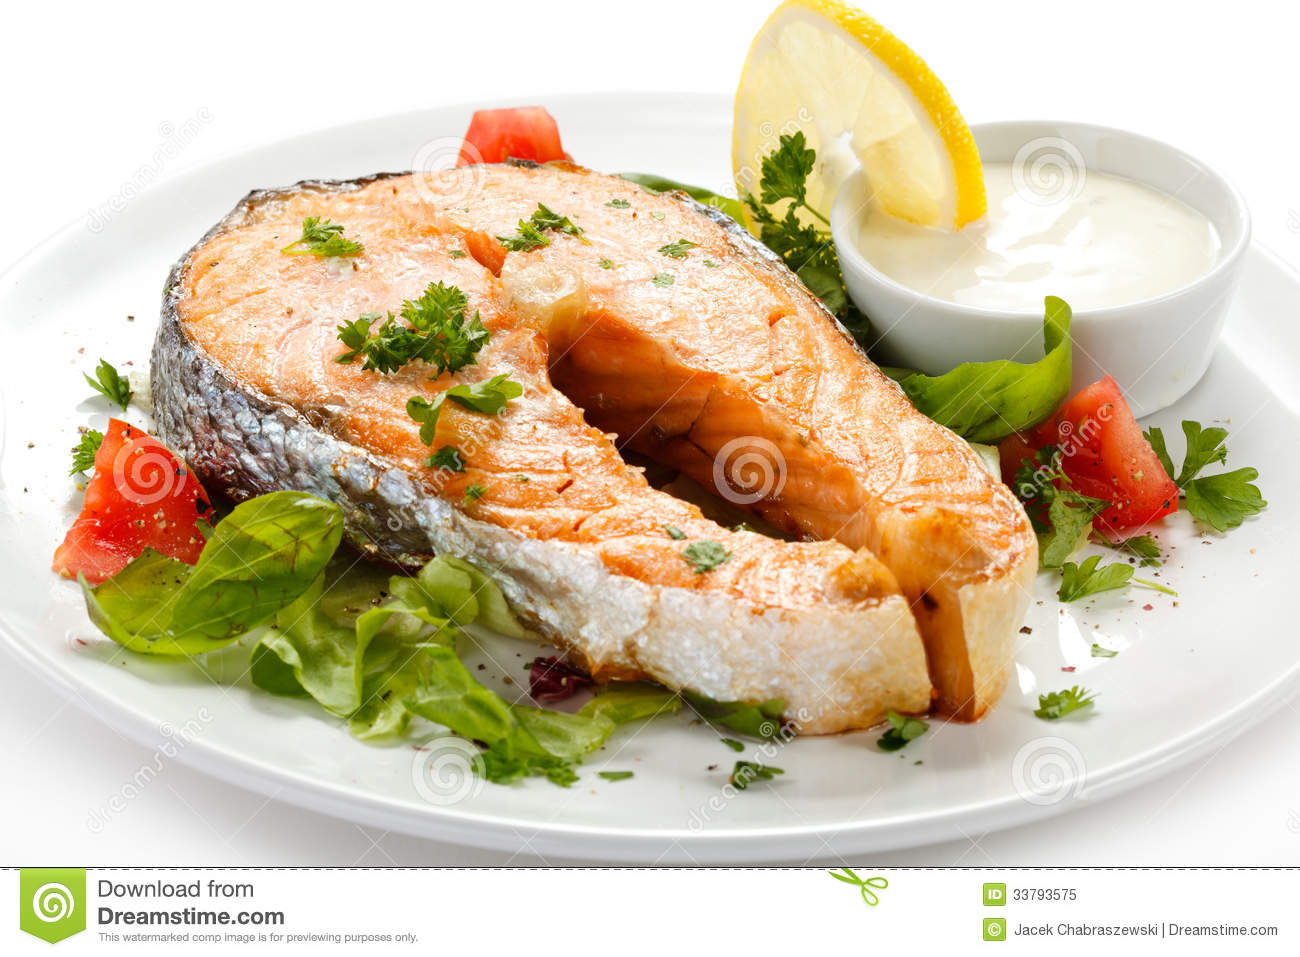 Roasted salmon and vegetables royalty free stock photo for What vegetables go with fish